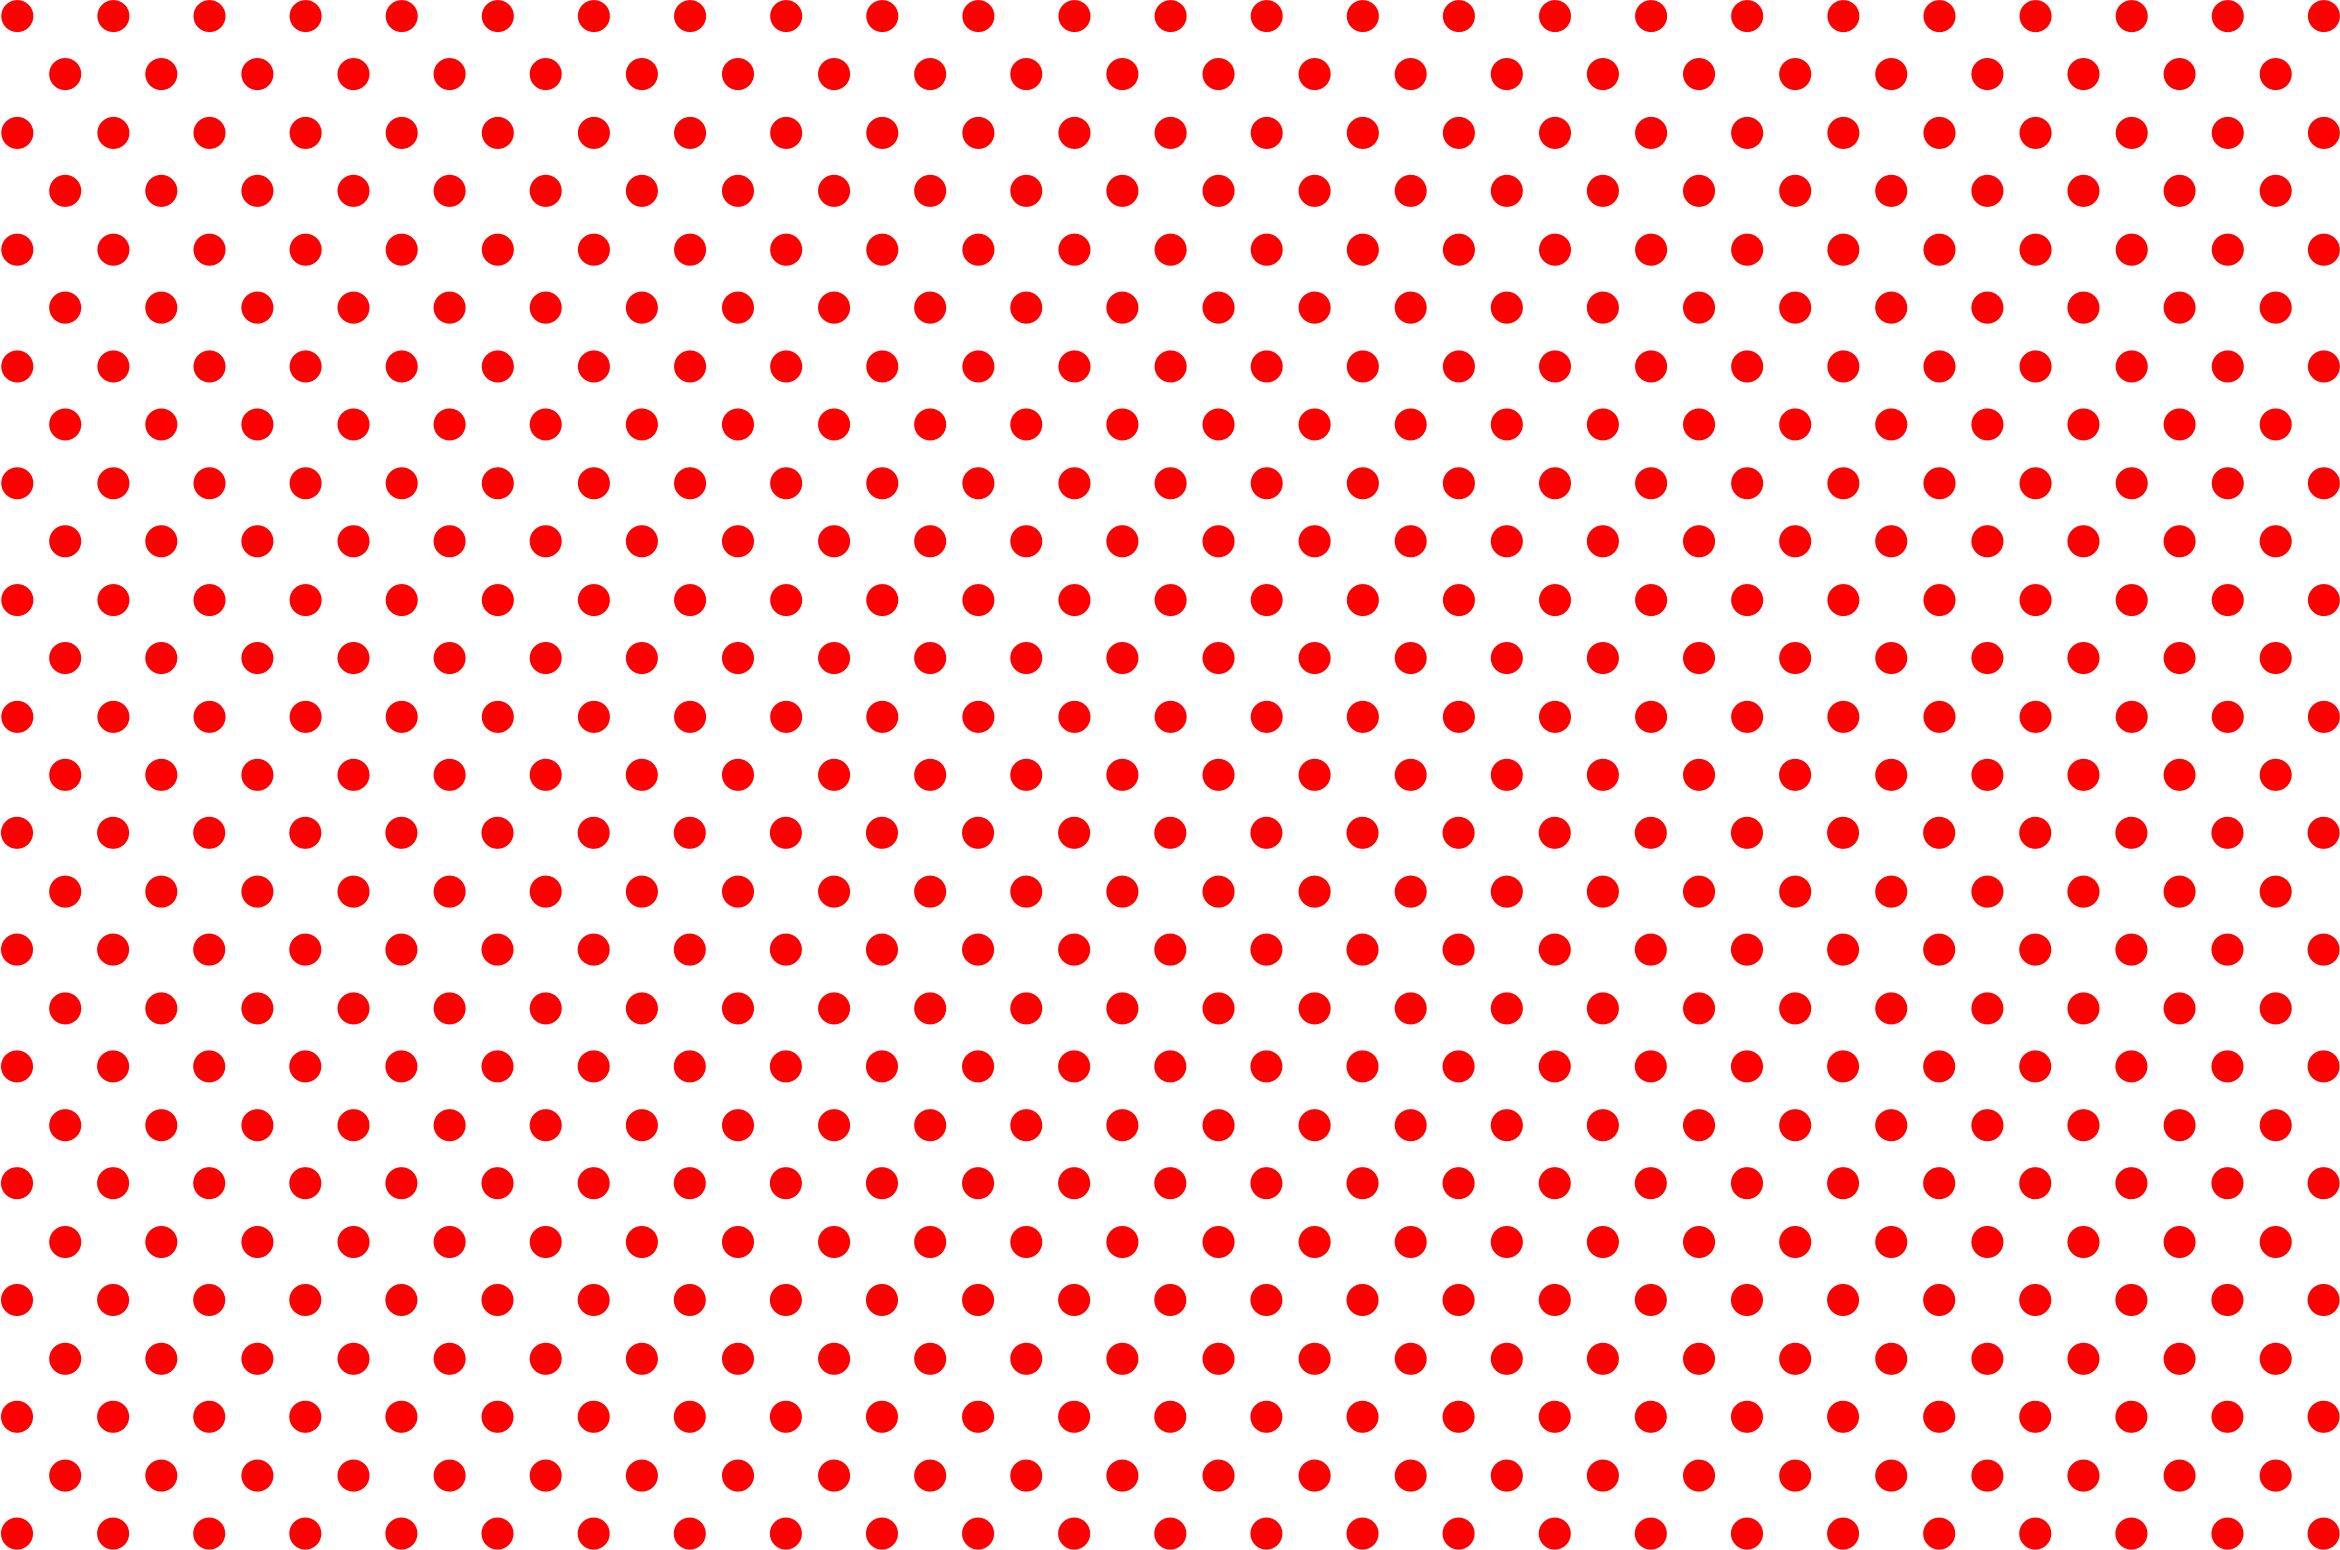 dots-clipart-transparent-11.png